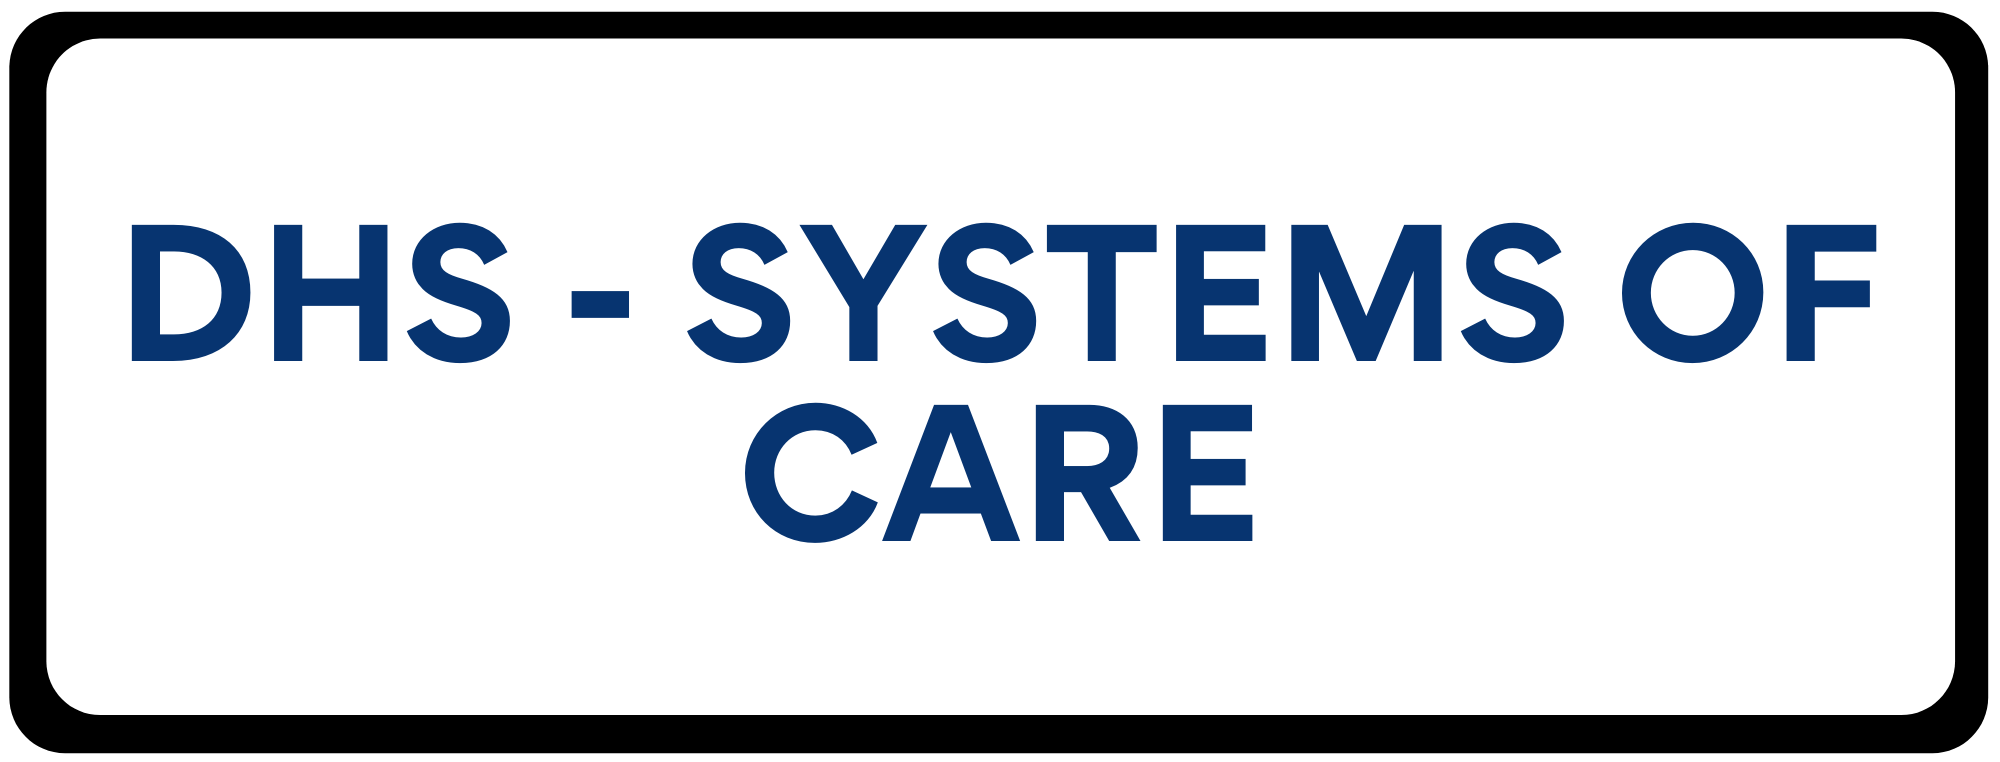 DHS Systems of Care